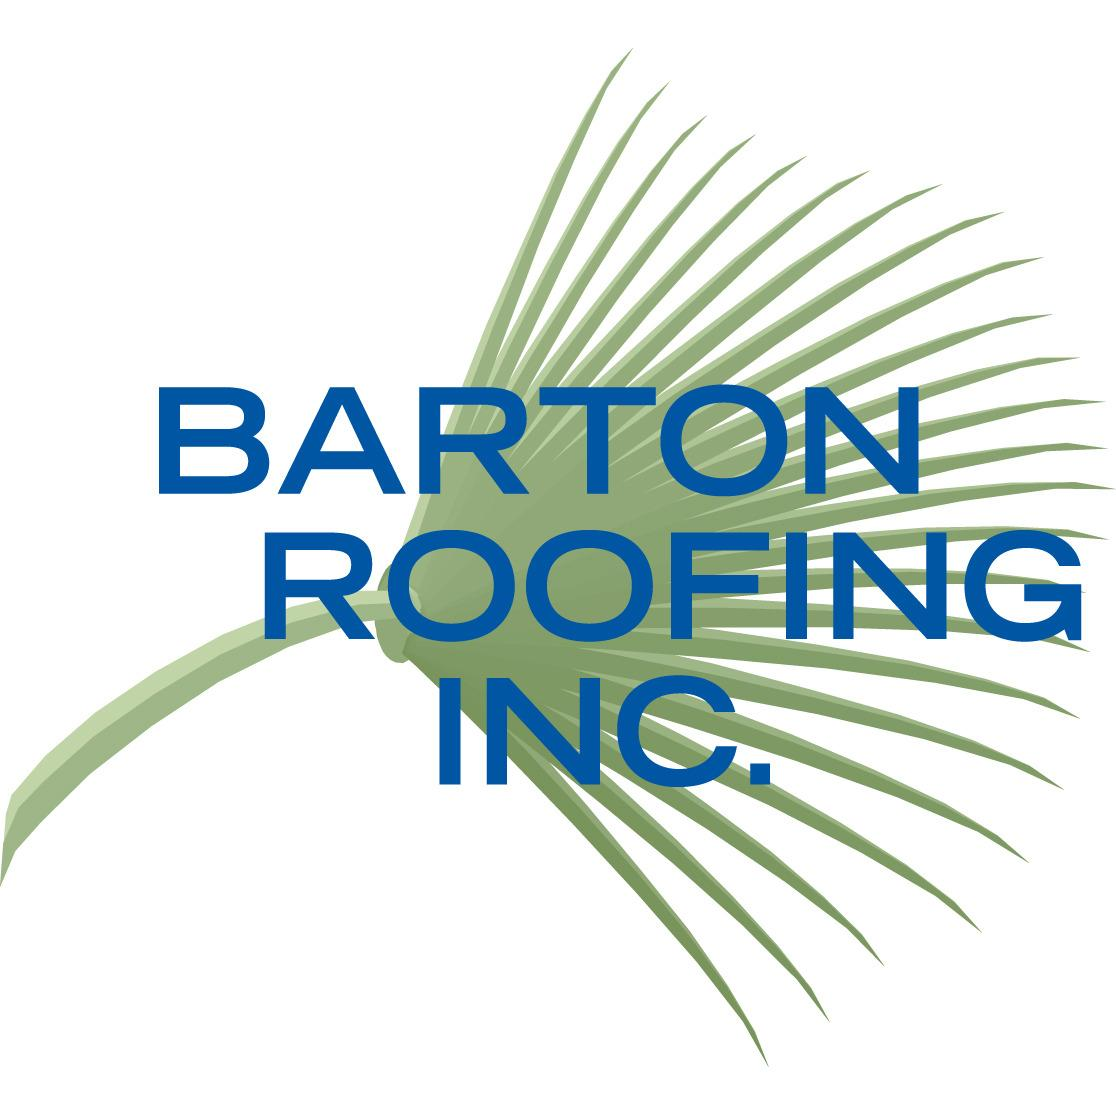 Barton Roofing Inc. - North Palm Beach, FL - Roofing Contractors